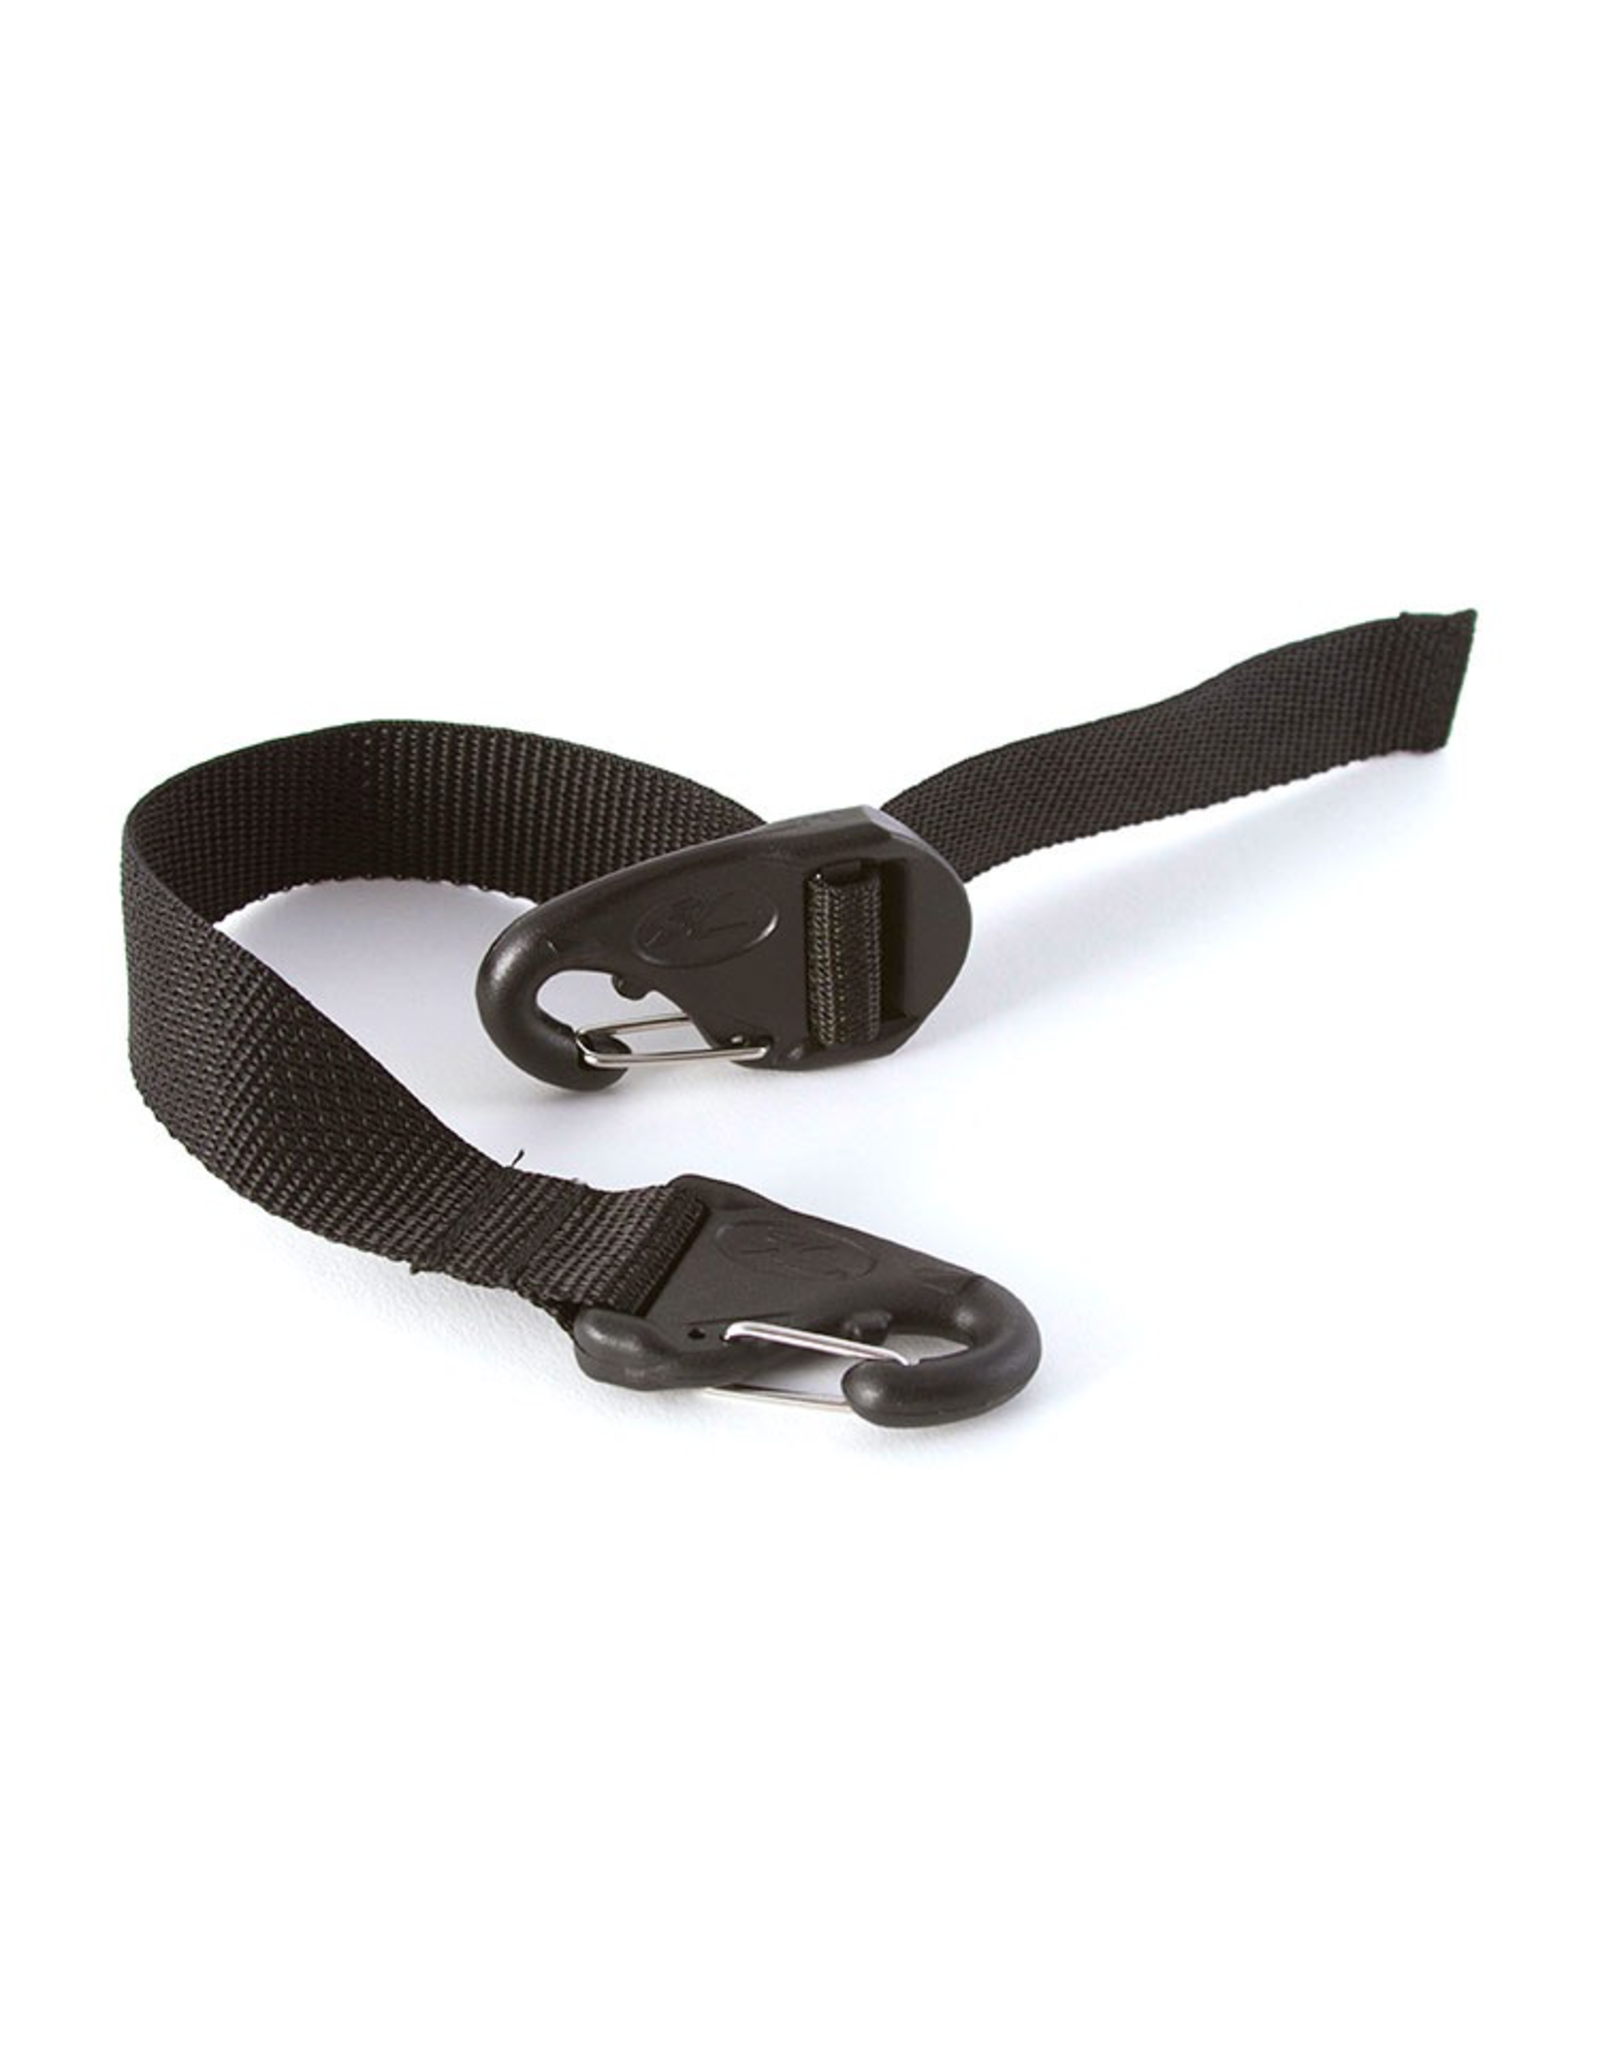 Hobie Hobie Tie Down Strap Assembly for the Hobie H-Crate, X-21